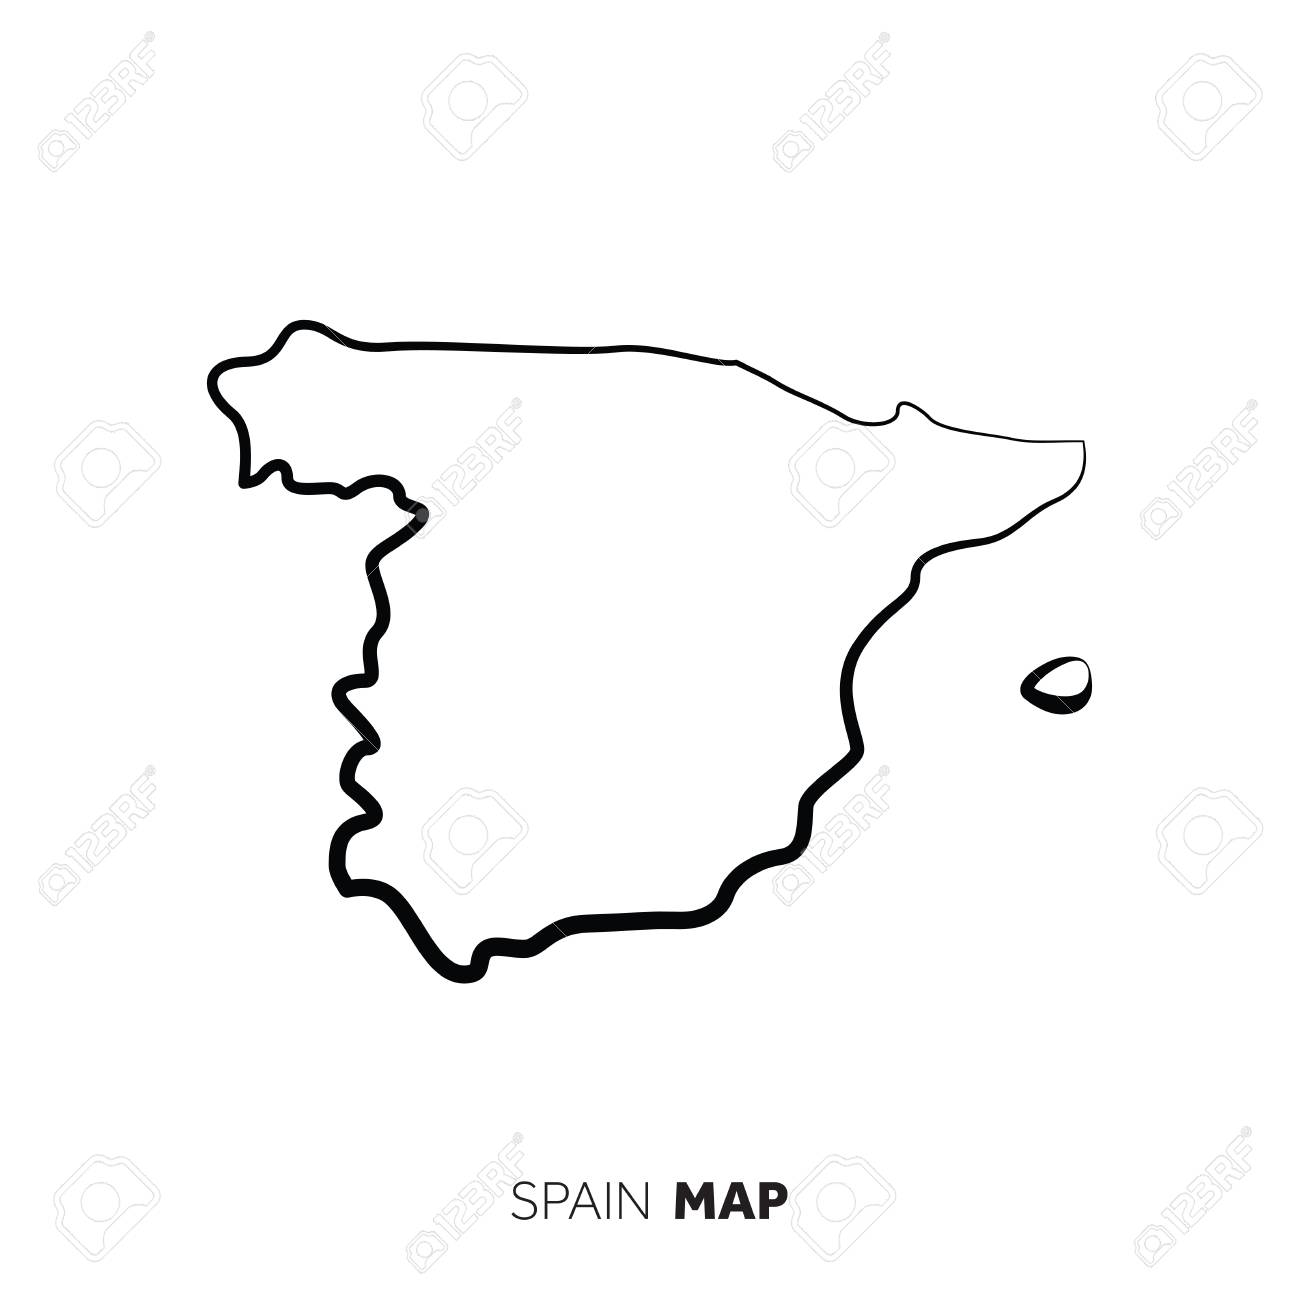 Spain Vector Country Map Outline Black Line On White Background